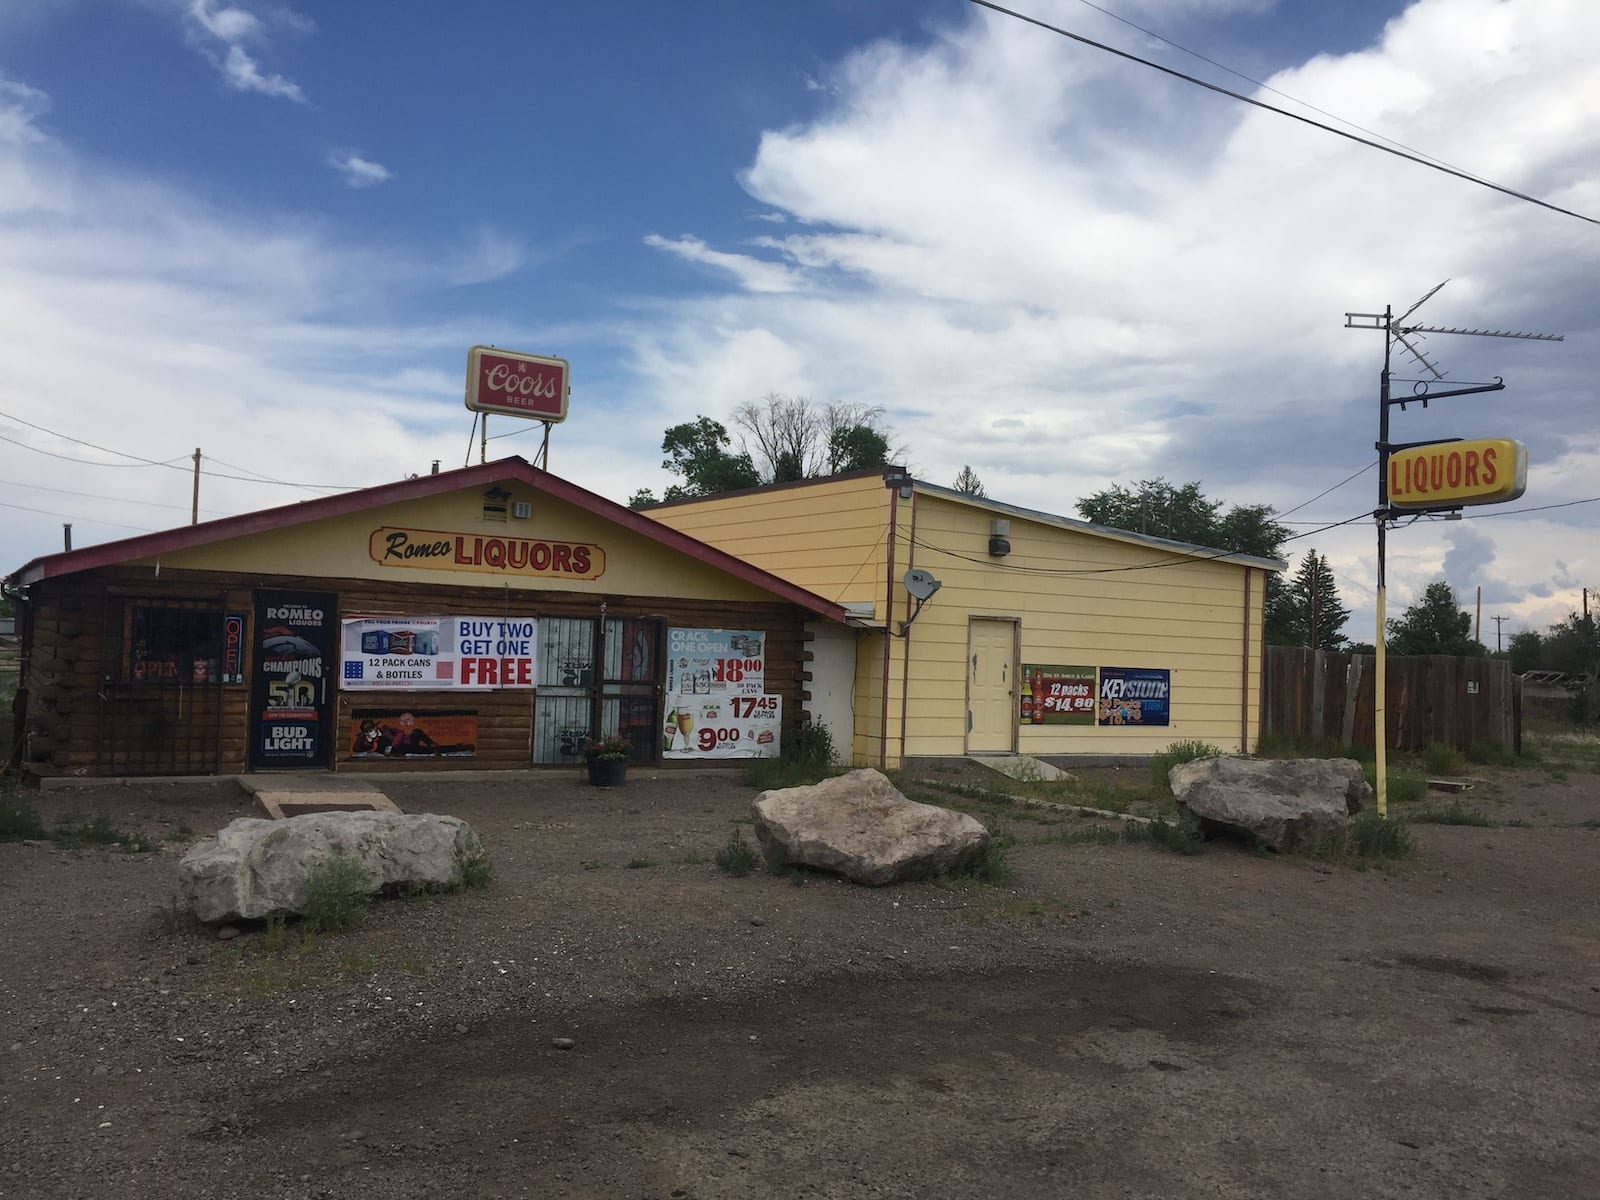 Romeo Colorado Liquor Store